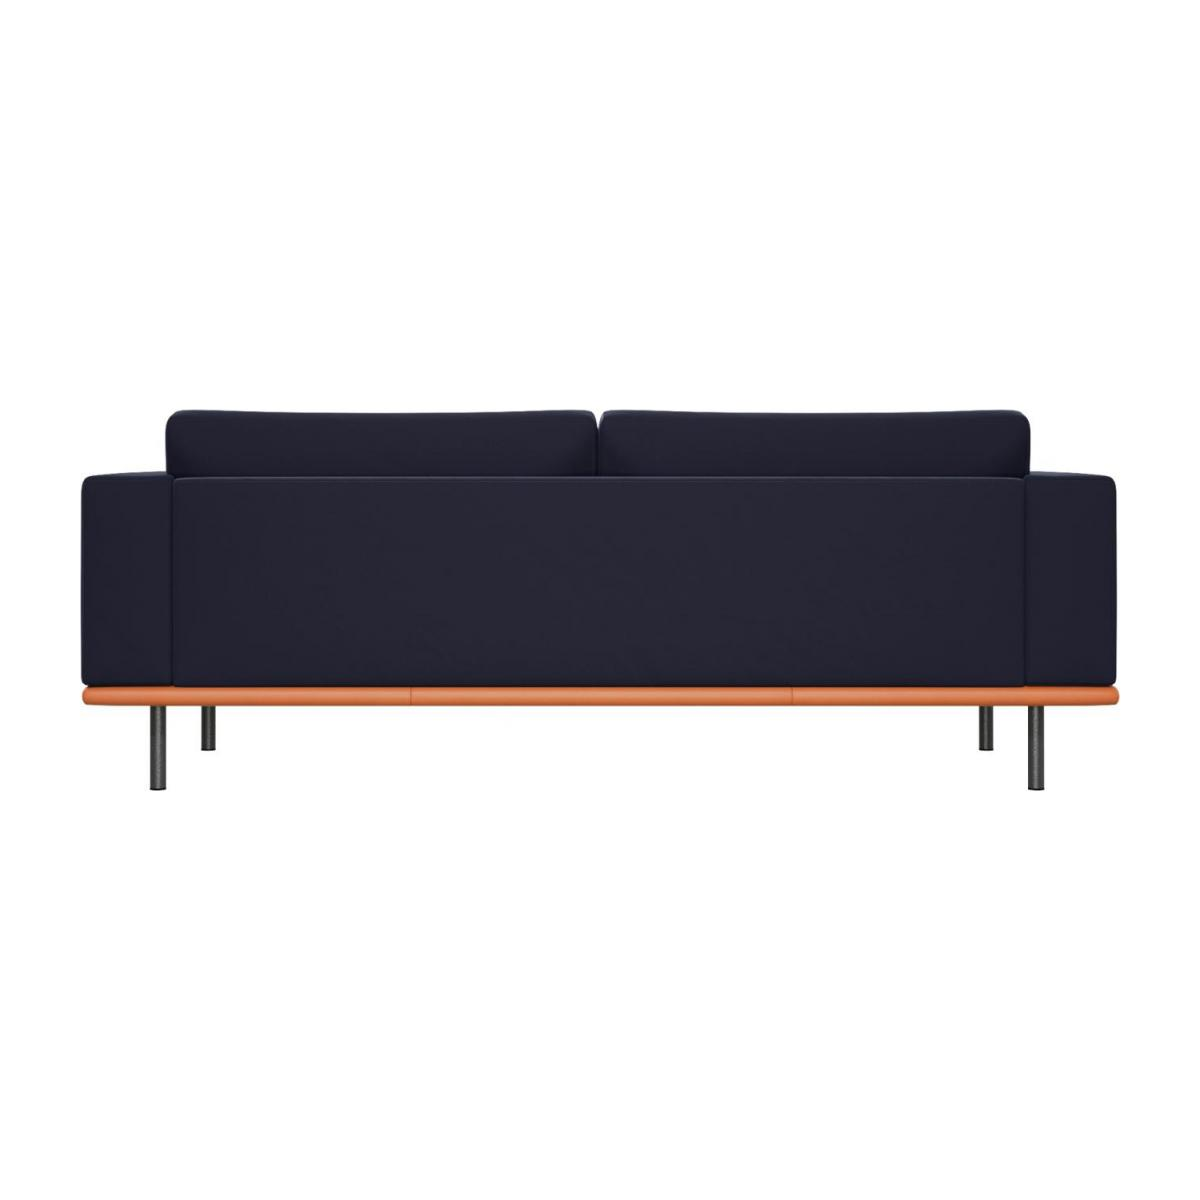 3 seater sofa in Super Velvet fabric, dark blue with base in brown leather n°3